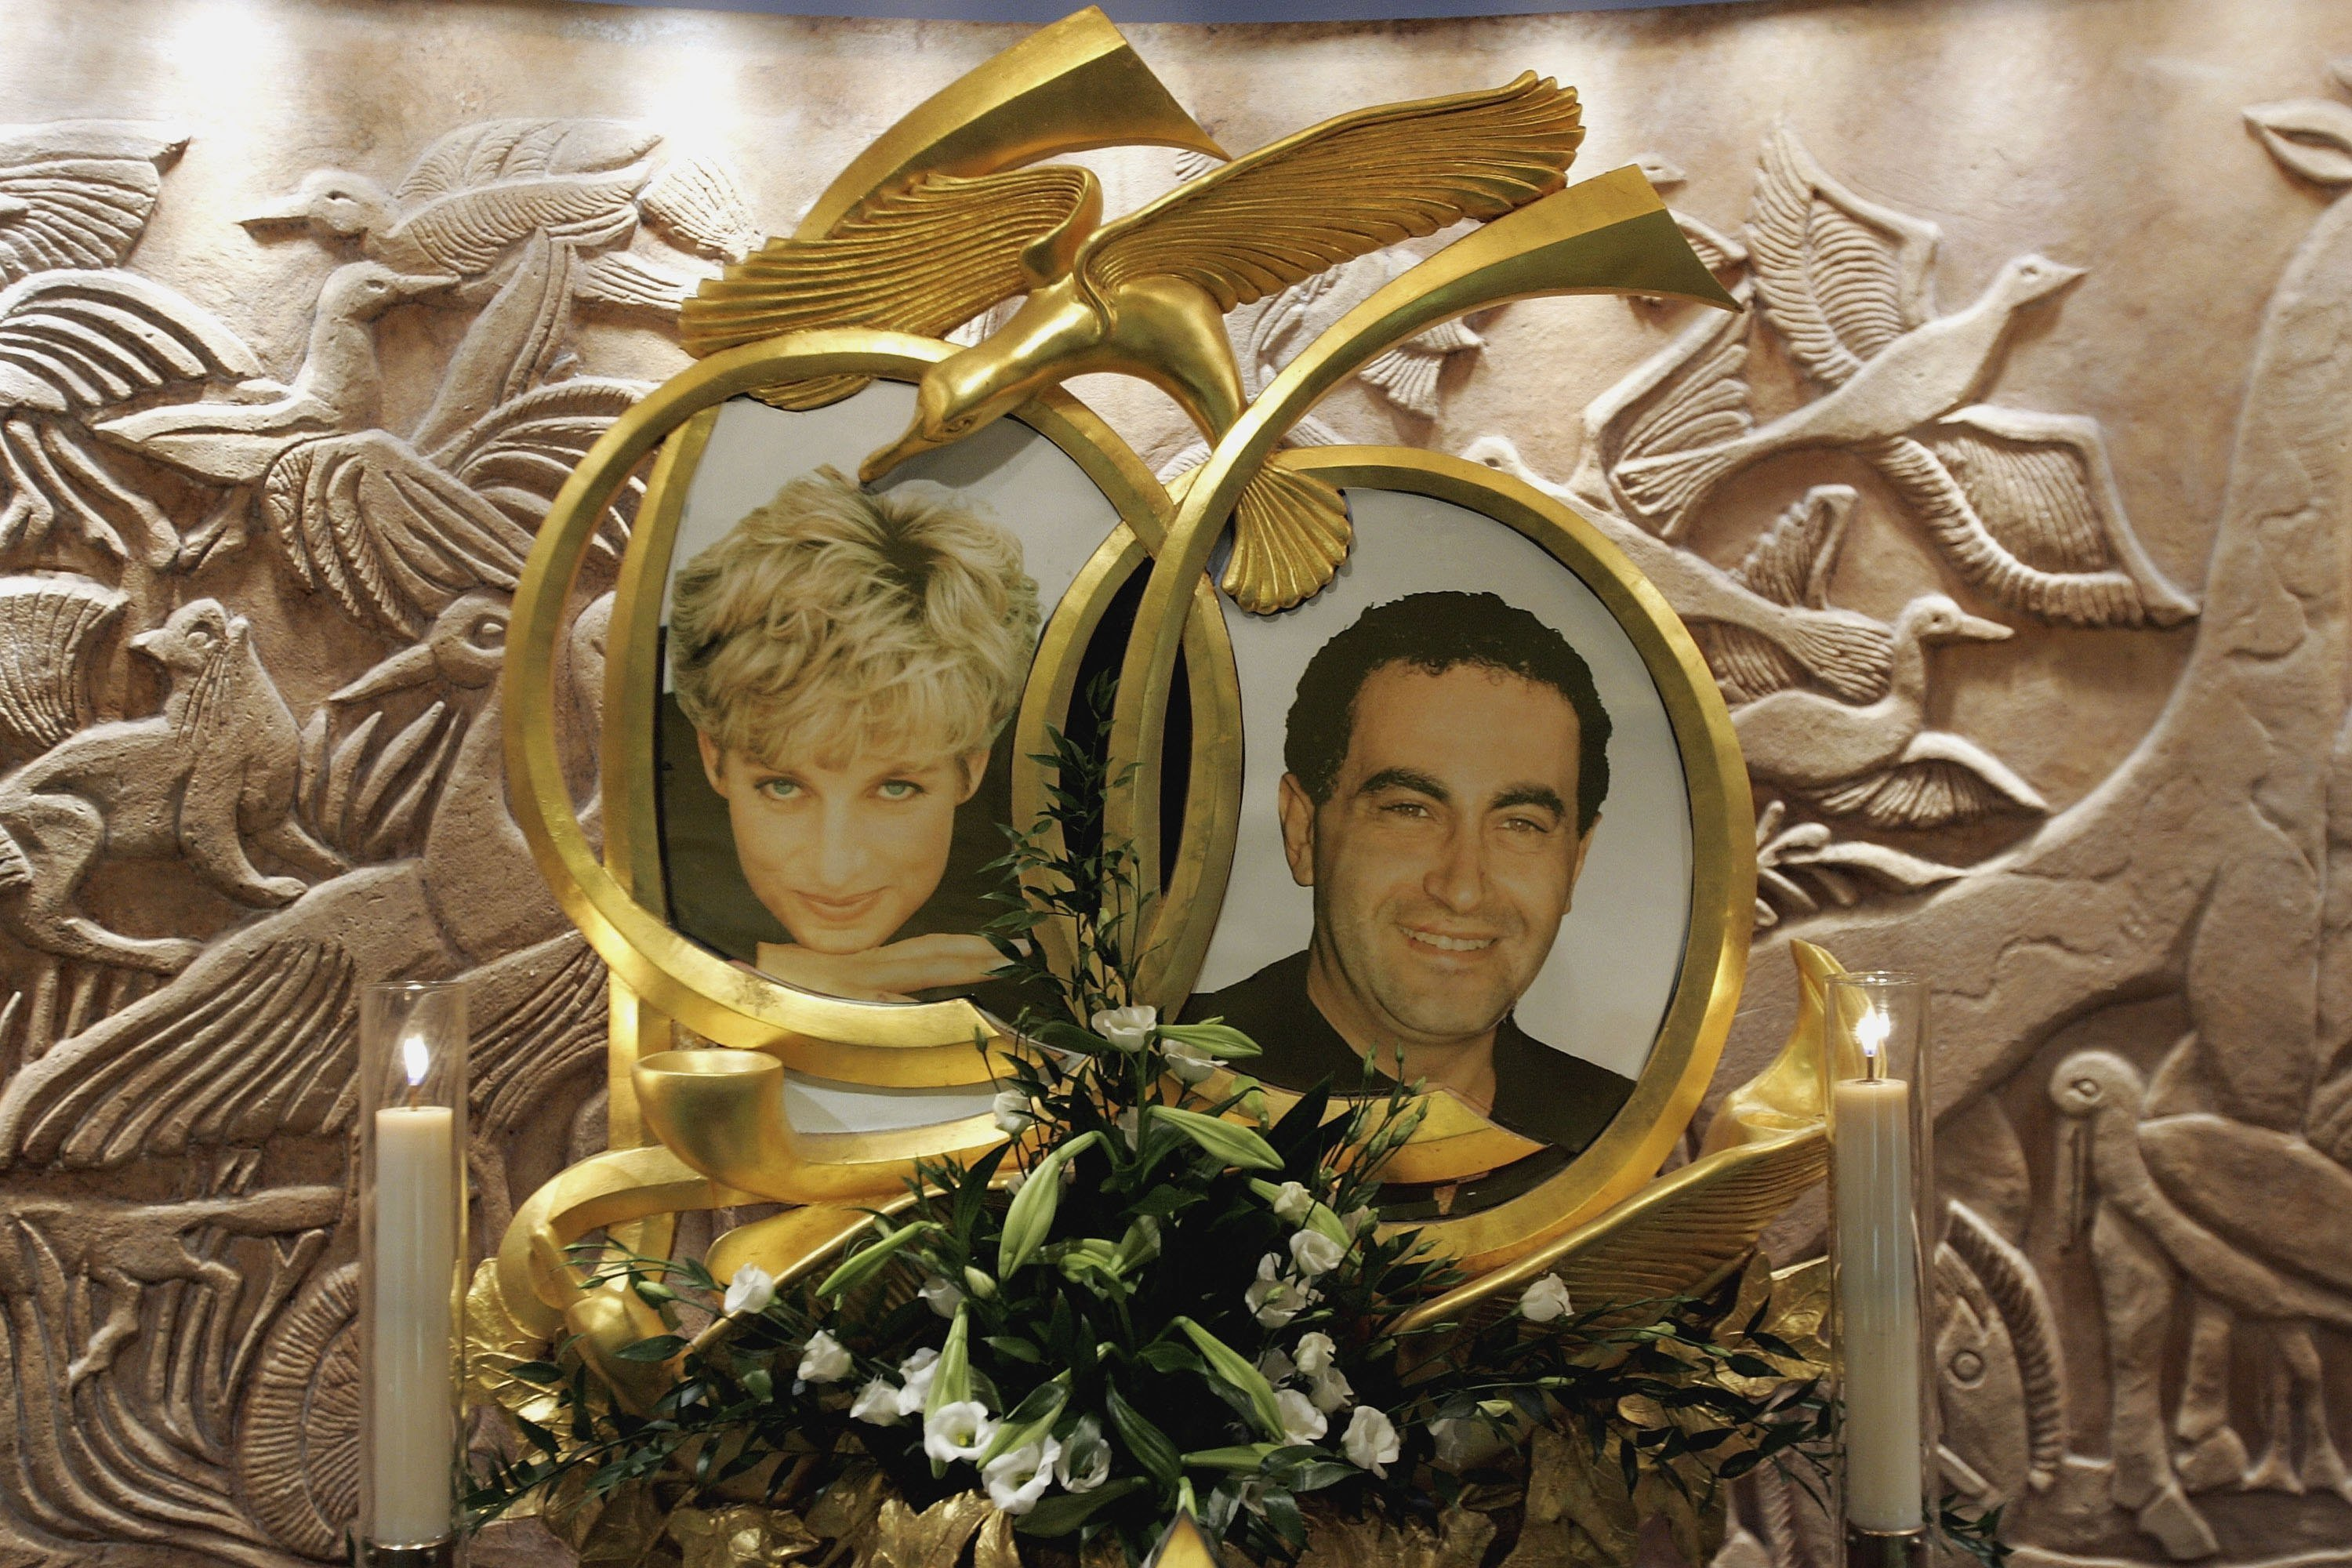 Diana, Princess of Wales and Dodi Fayed memorial in Harrods on January 8, 2006 in London, England | Photo: GettyImages